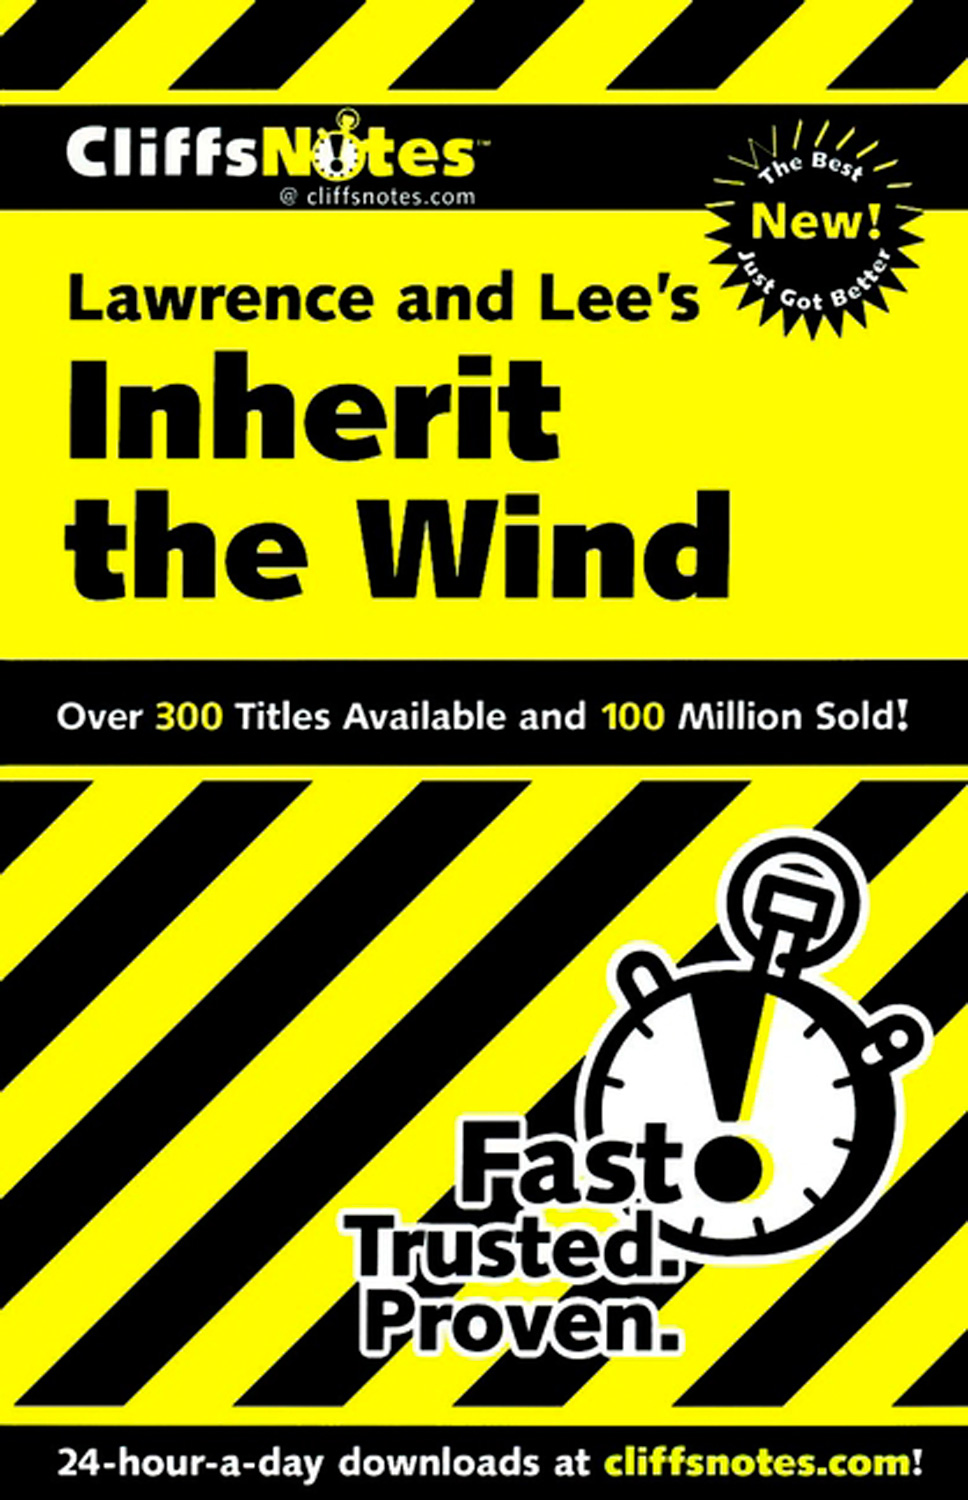 CliffsNotes on Lawrence & Lee's Inherit the Wind-9780764585548